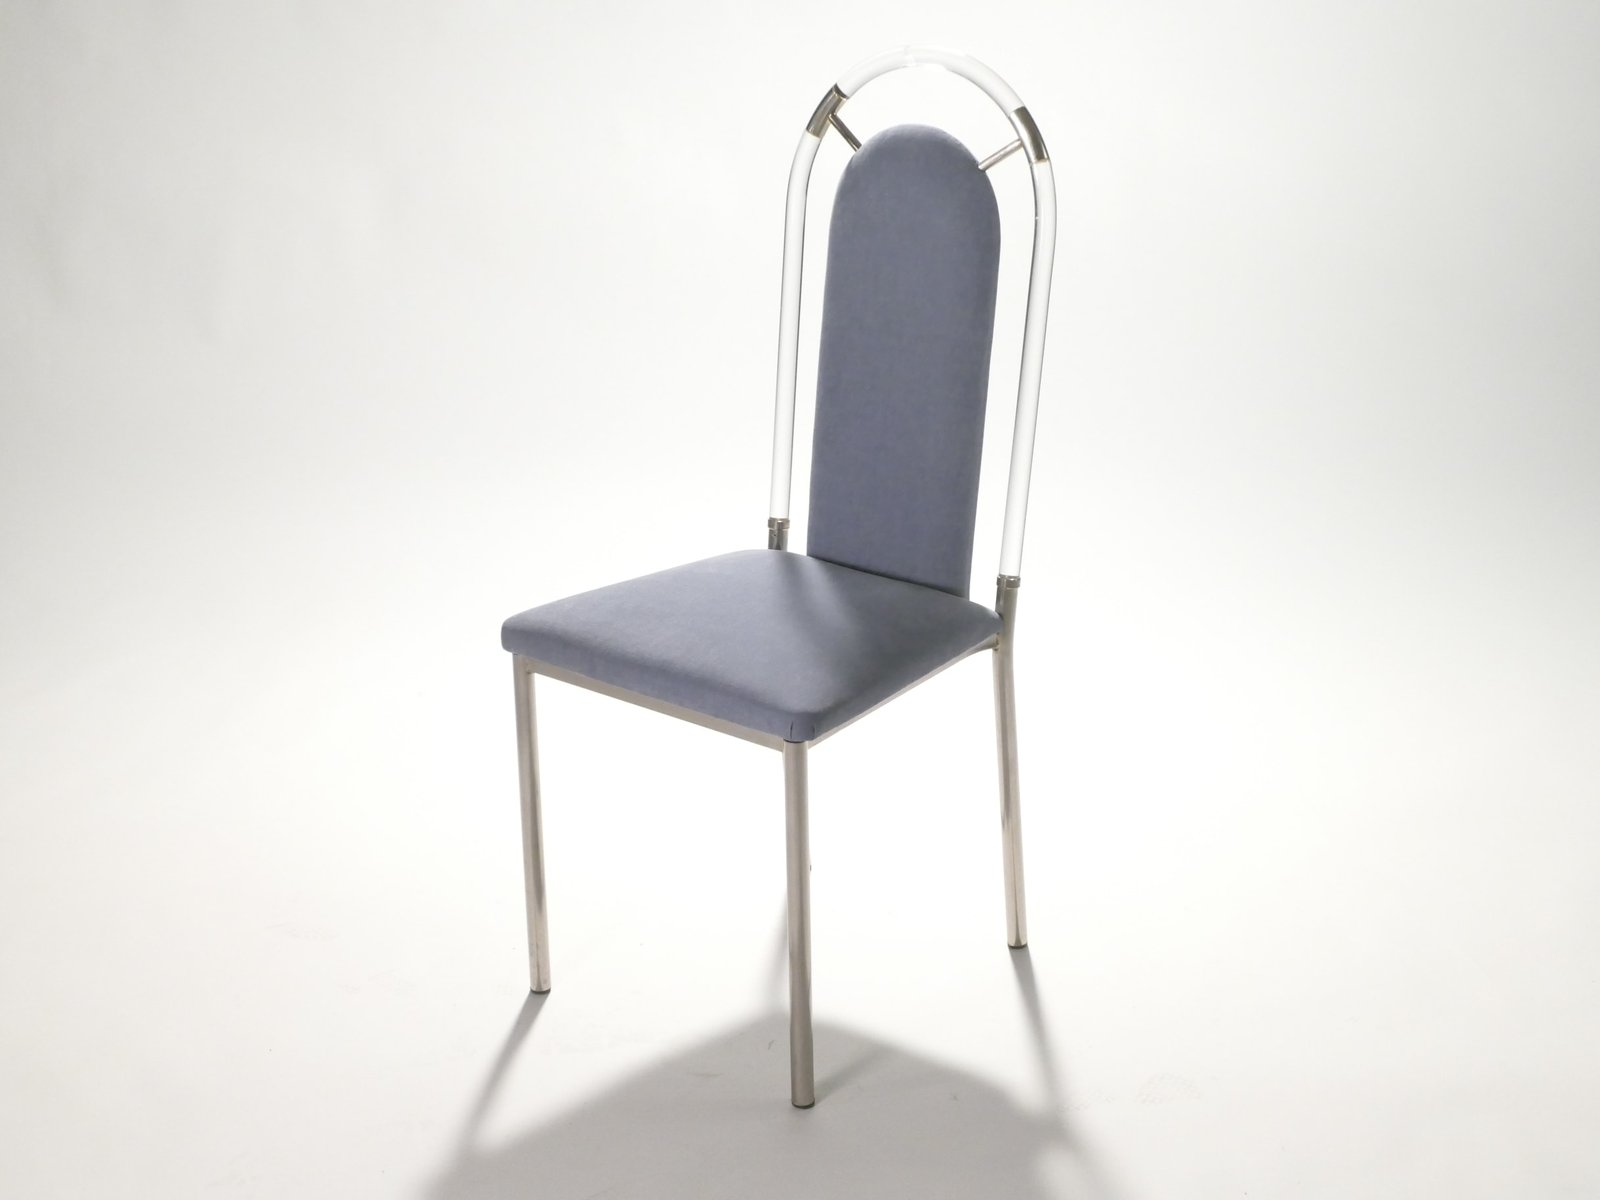 Plexiglass Chairs Plexiglass Dining Chairs From Maison Jansen 1970s Set Of 8